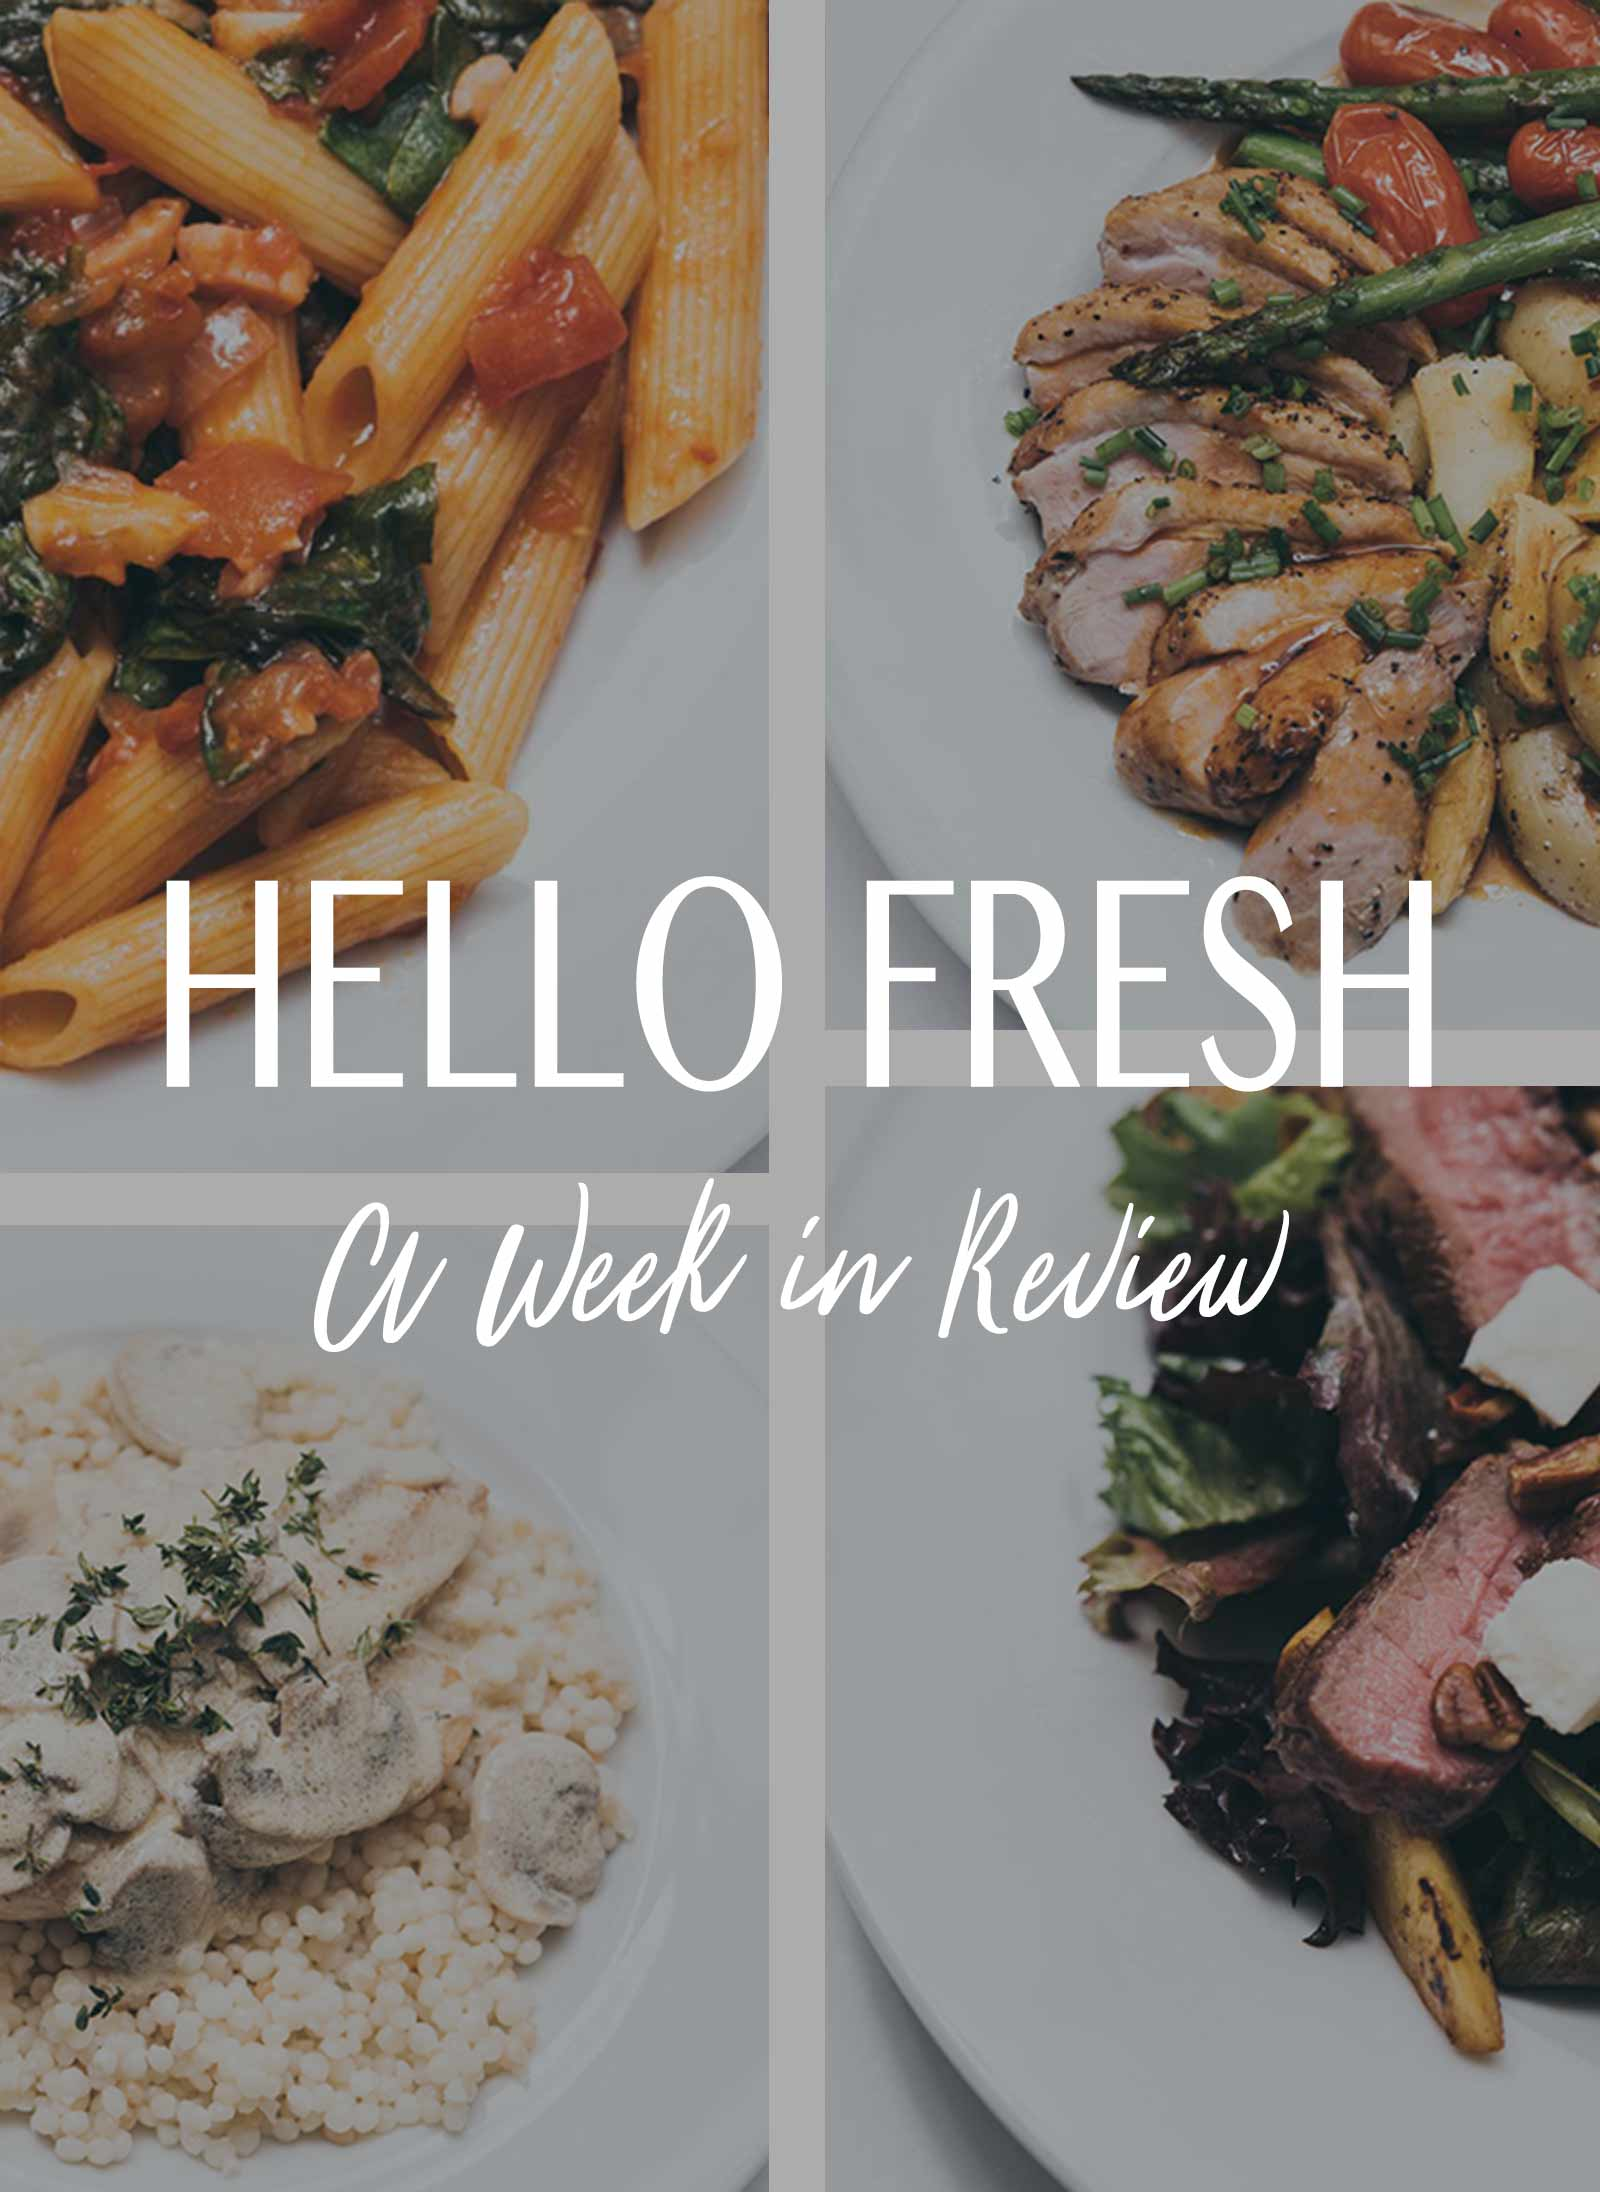 Video Tips Meal Kit Delivery Service  Hellofresh